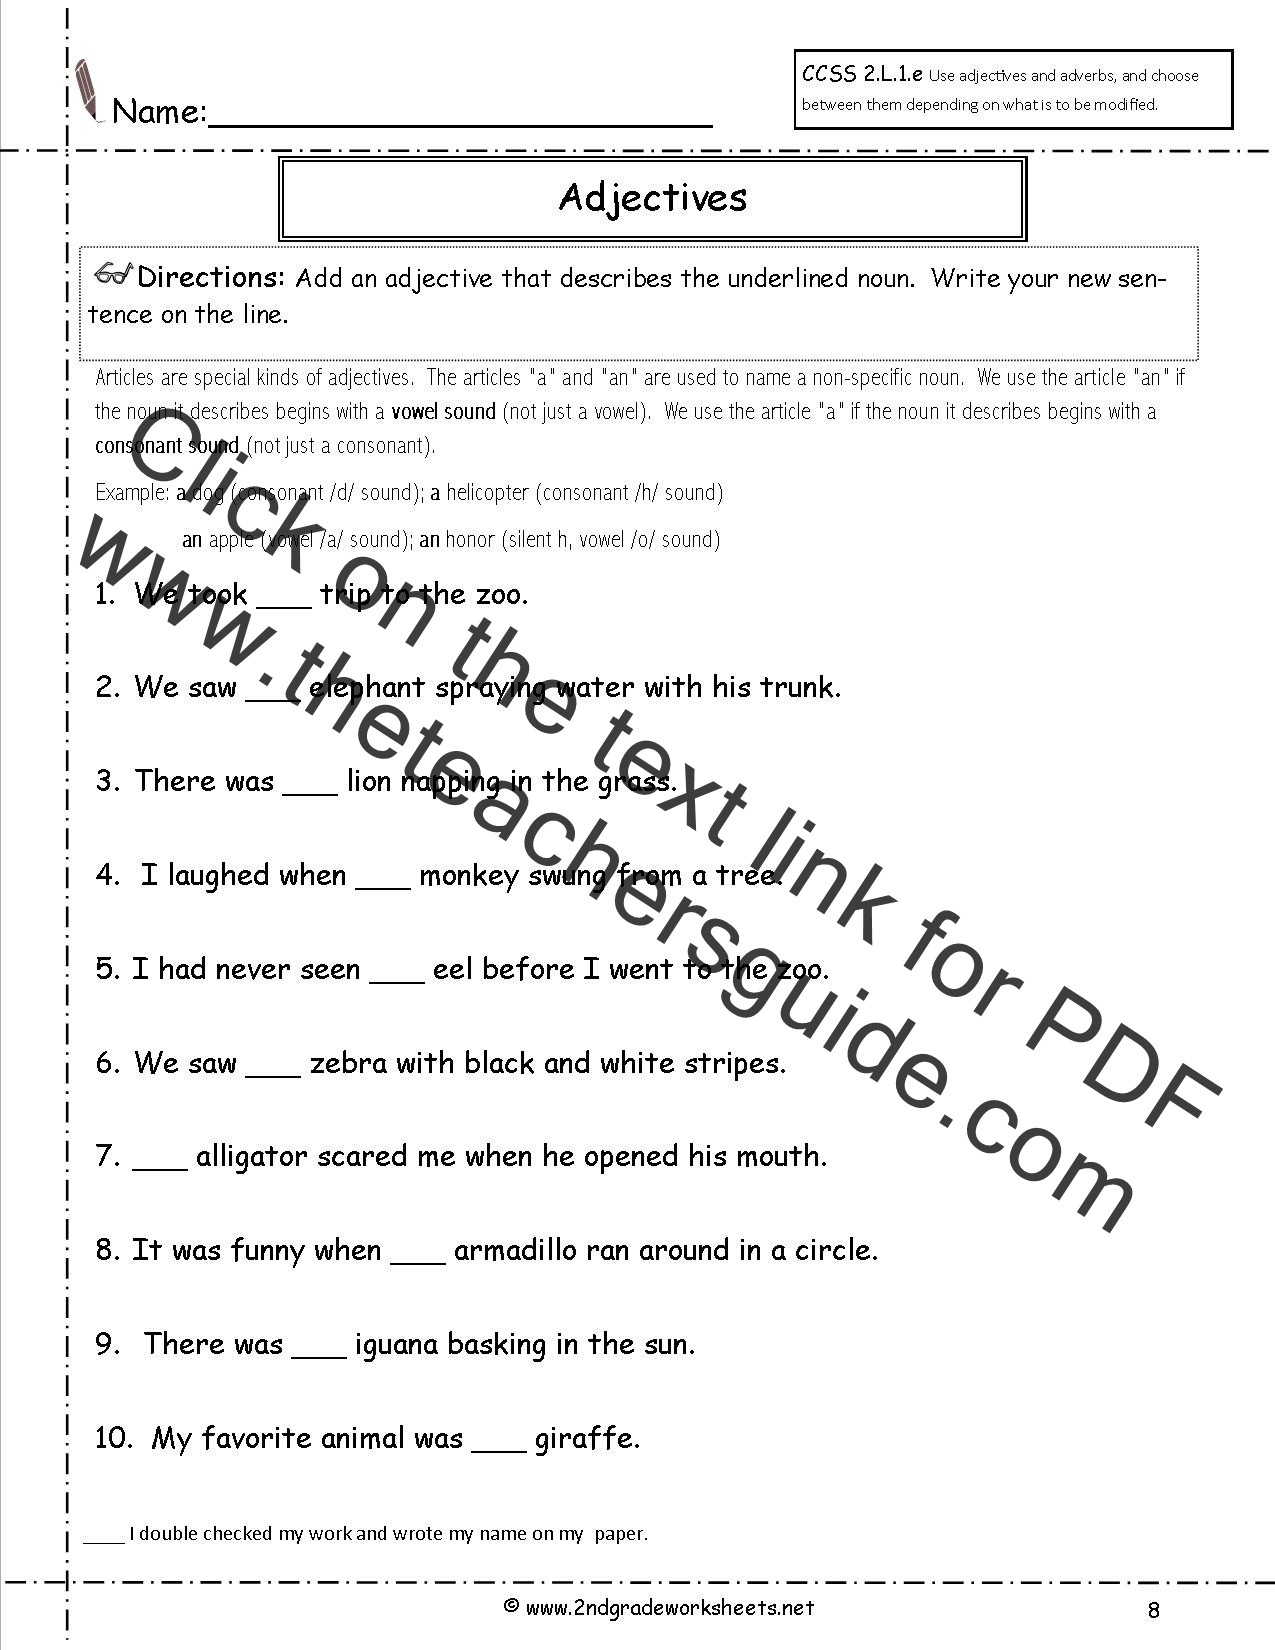 Adjectives Worksheets for Grade 2 Free Language Grammar Worksheets and Printouts